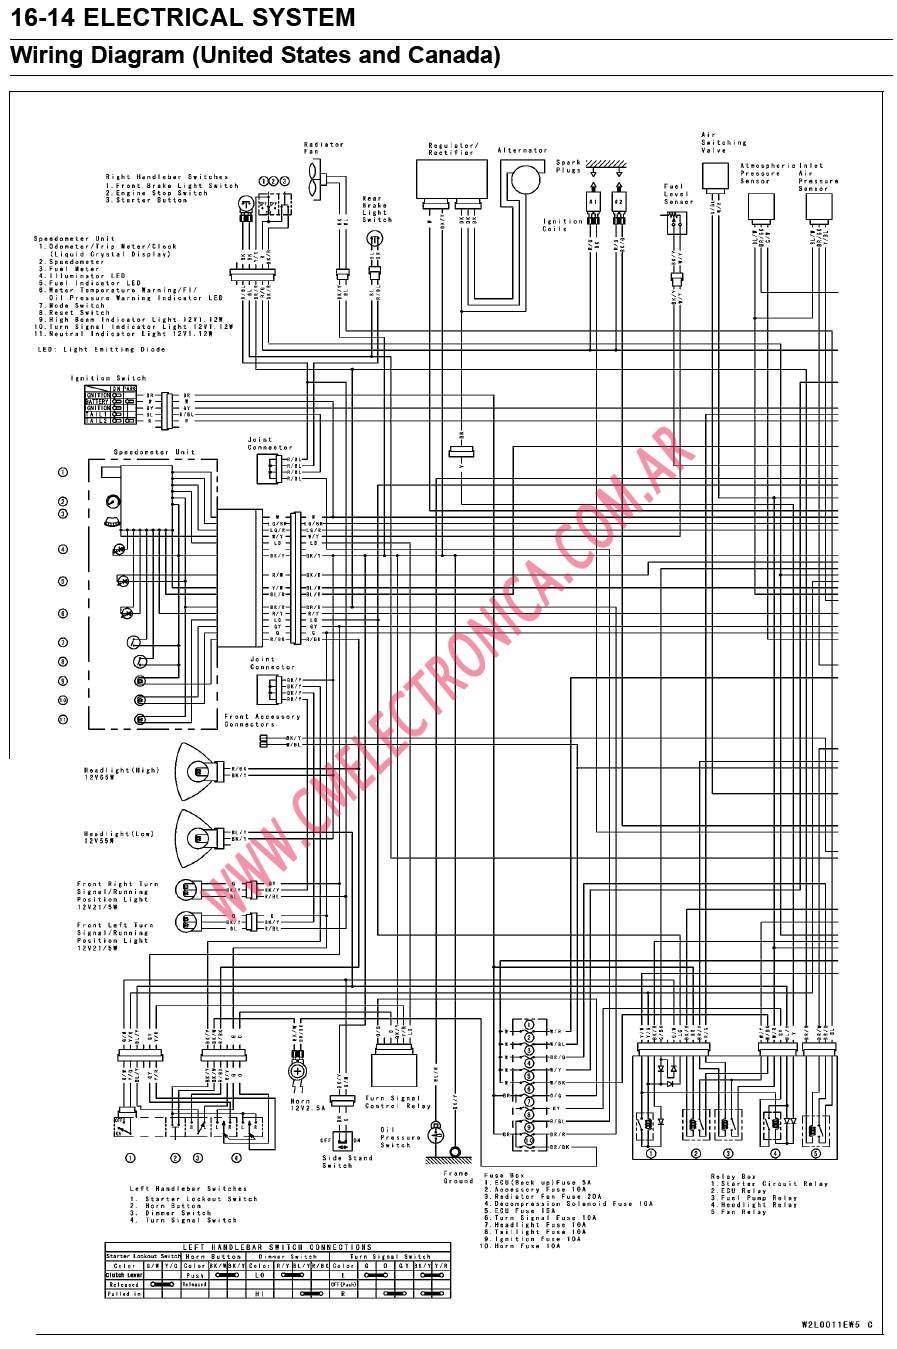 honda 750 wiring diagram honda vt1100 wiring diagram honda wiring diagram collections kawasaki vn2000 1982 honda shadow 750 wiring diagram